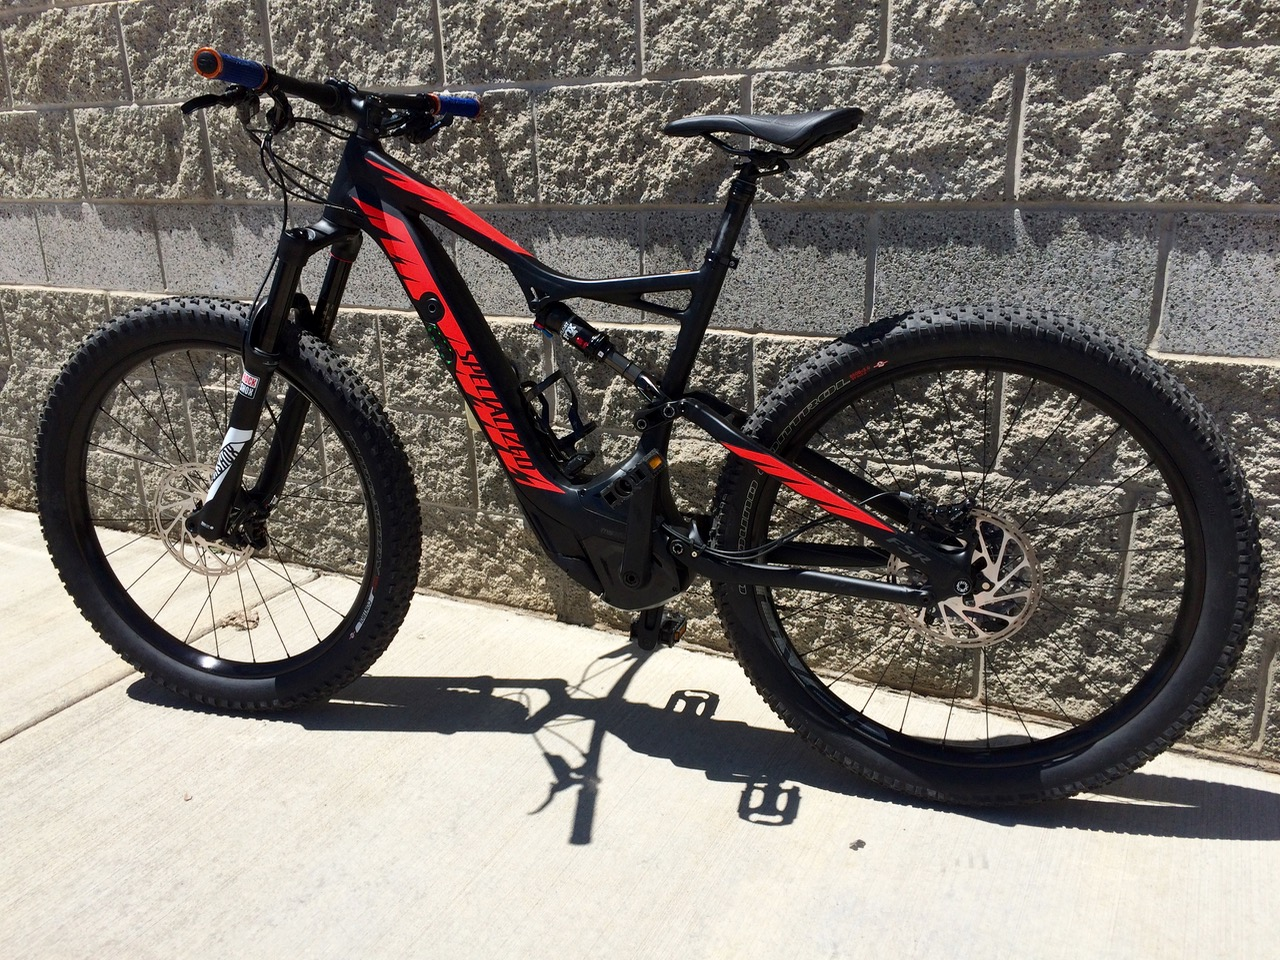 parking lot laps specialized turbo levo fsr comp 6fattie. Black Bedroom Furniture Sets. Home Design Ideas